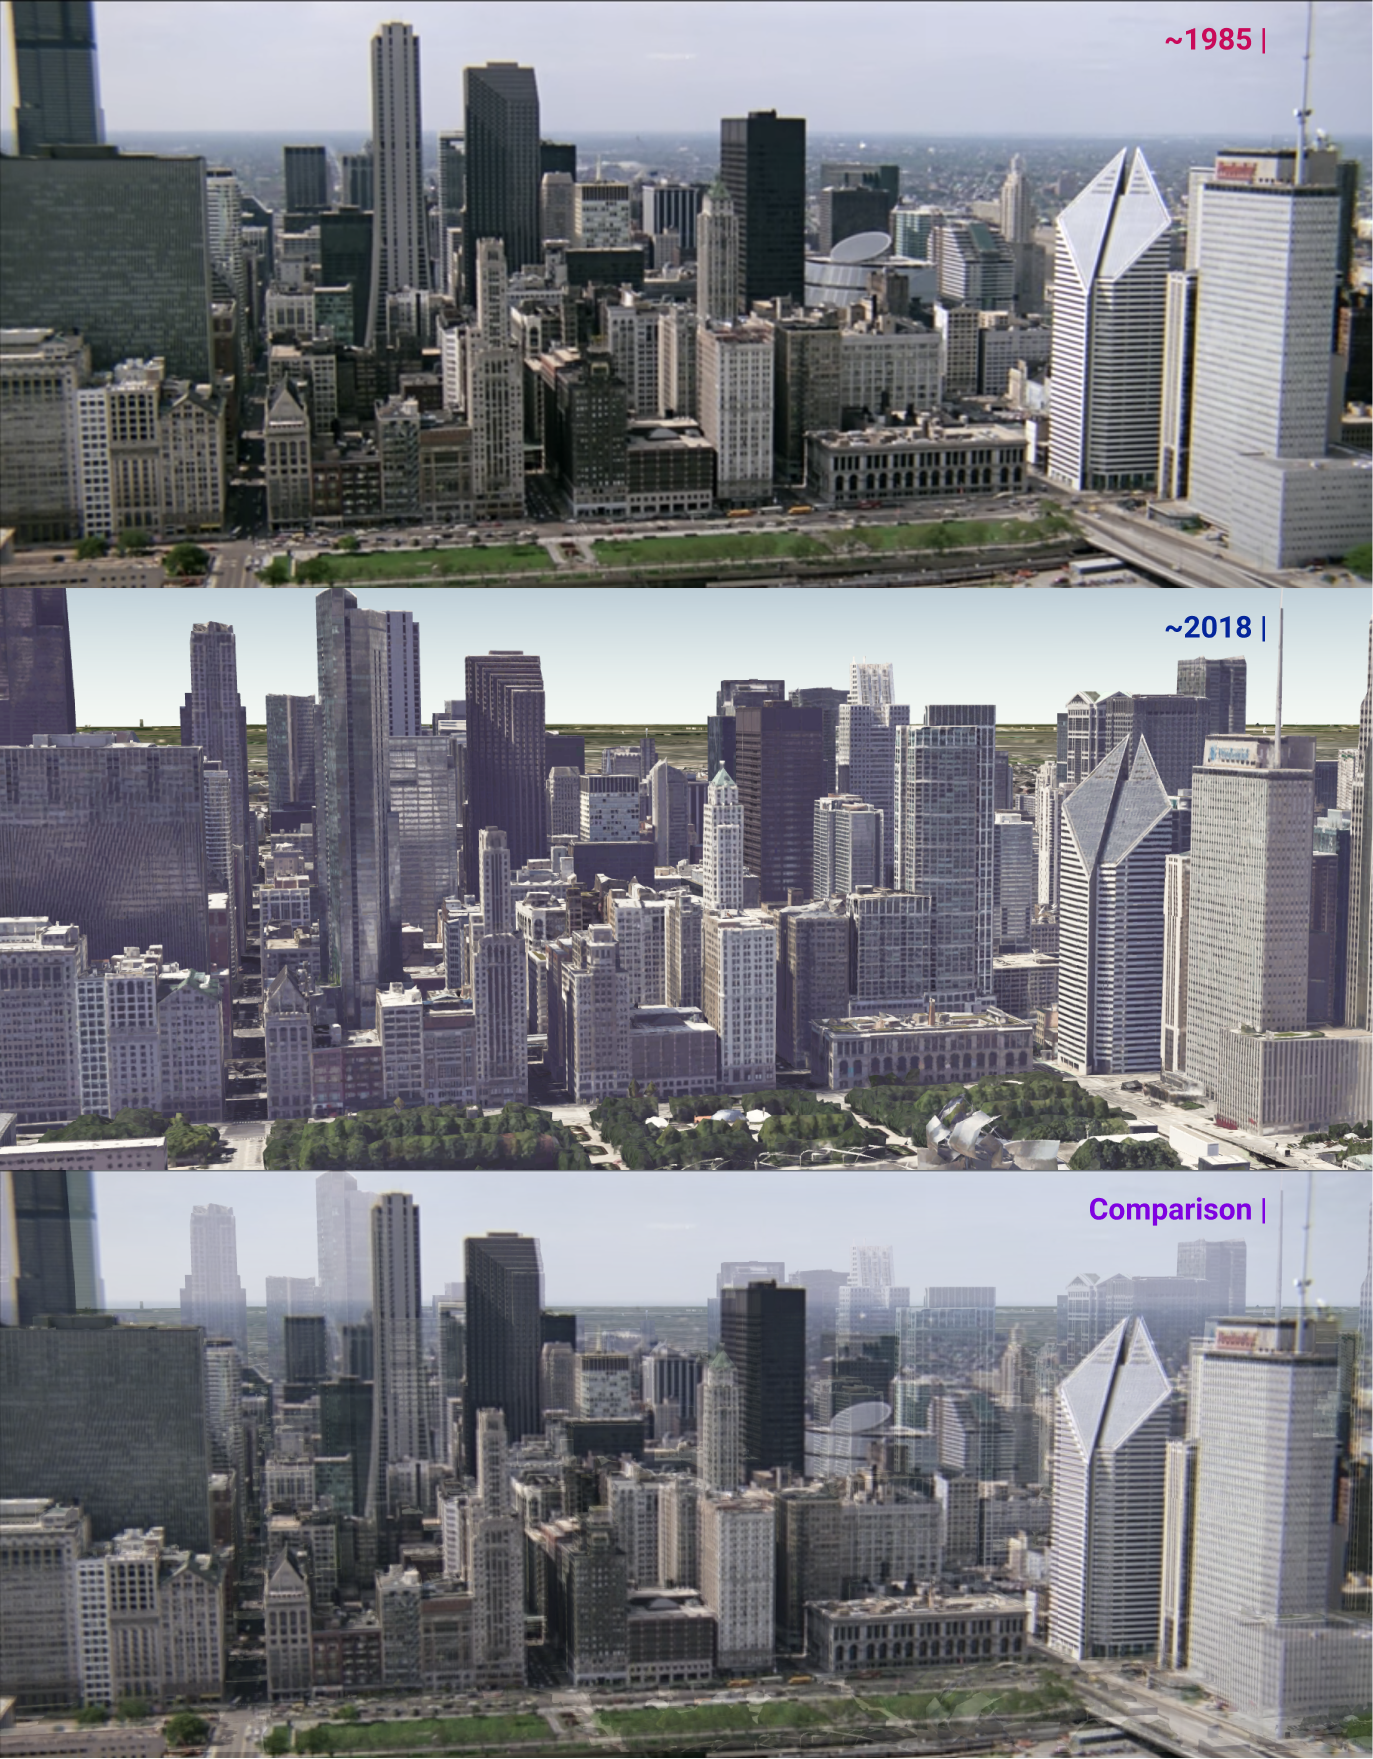 Comparison of the angle facing east toward Michigan Avenue and The Loop (1986/~2018)